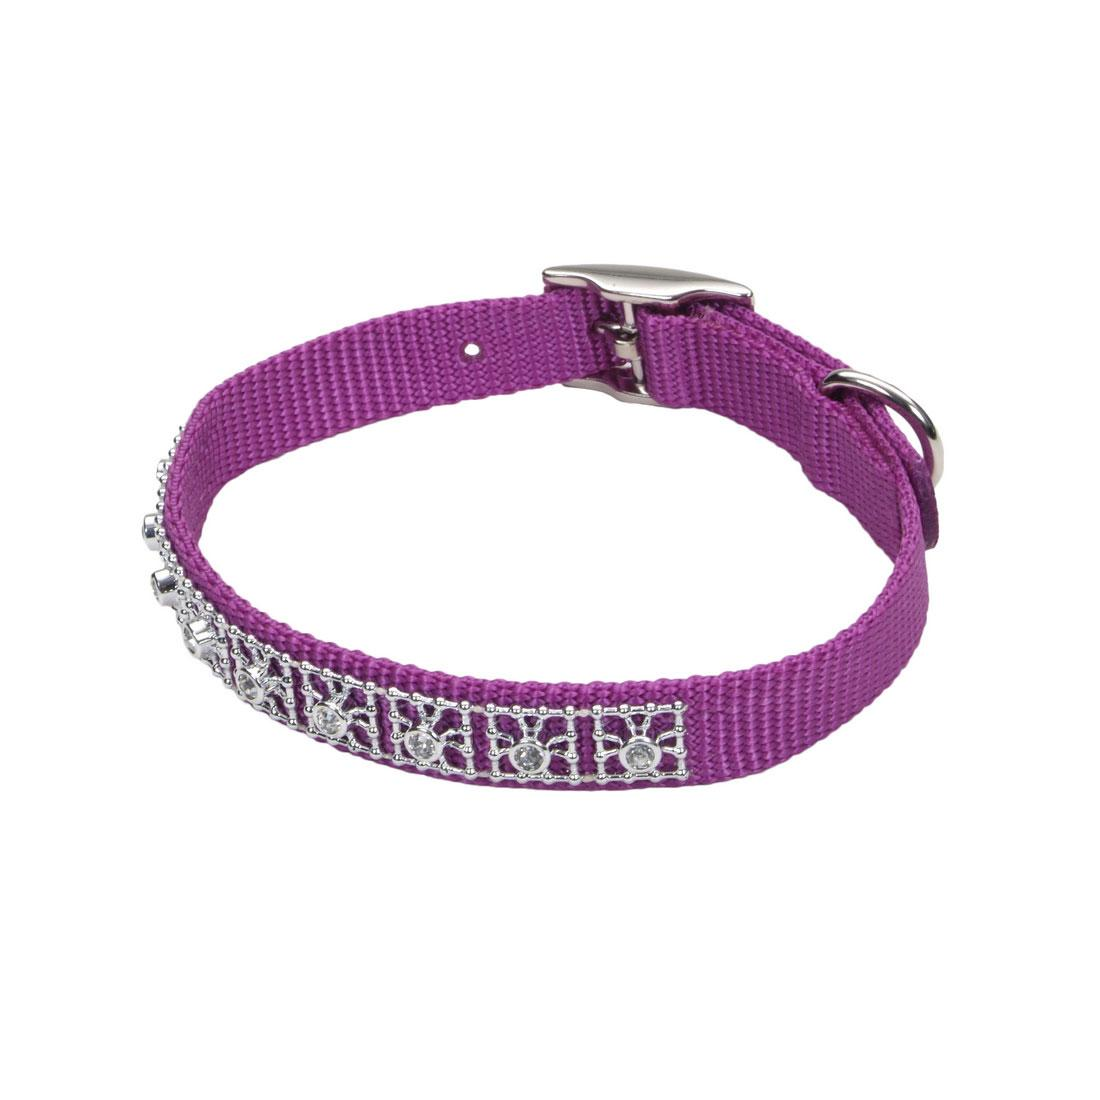 Coastal Jeweled Dog Collar, Orchid, 3/8-in x 10-in